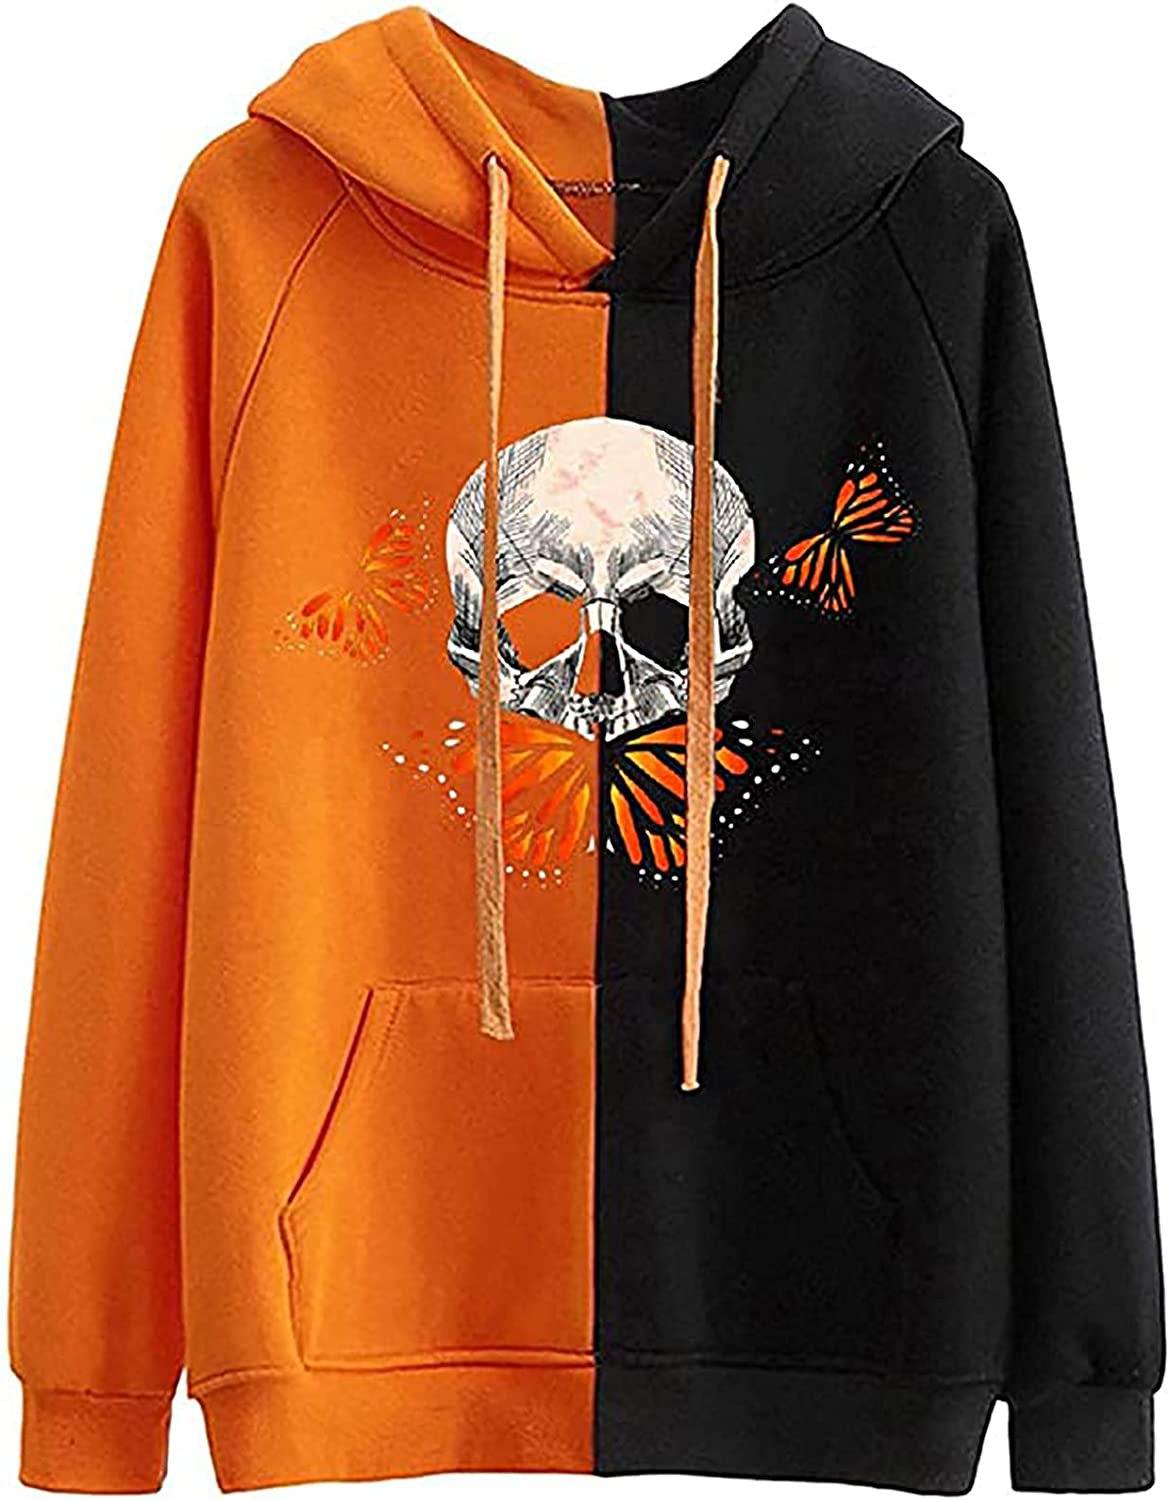 Pumpkin Skull Print Hoodies For Women Halloween Two-Color Stitching Long Sleeve Funny Sweatshirt Tops With Pockets